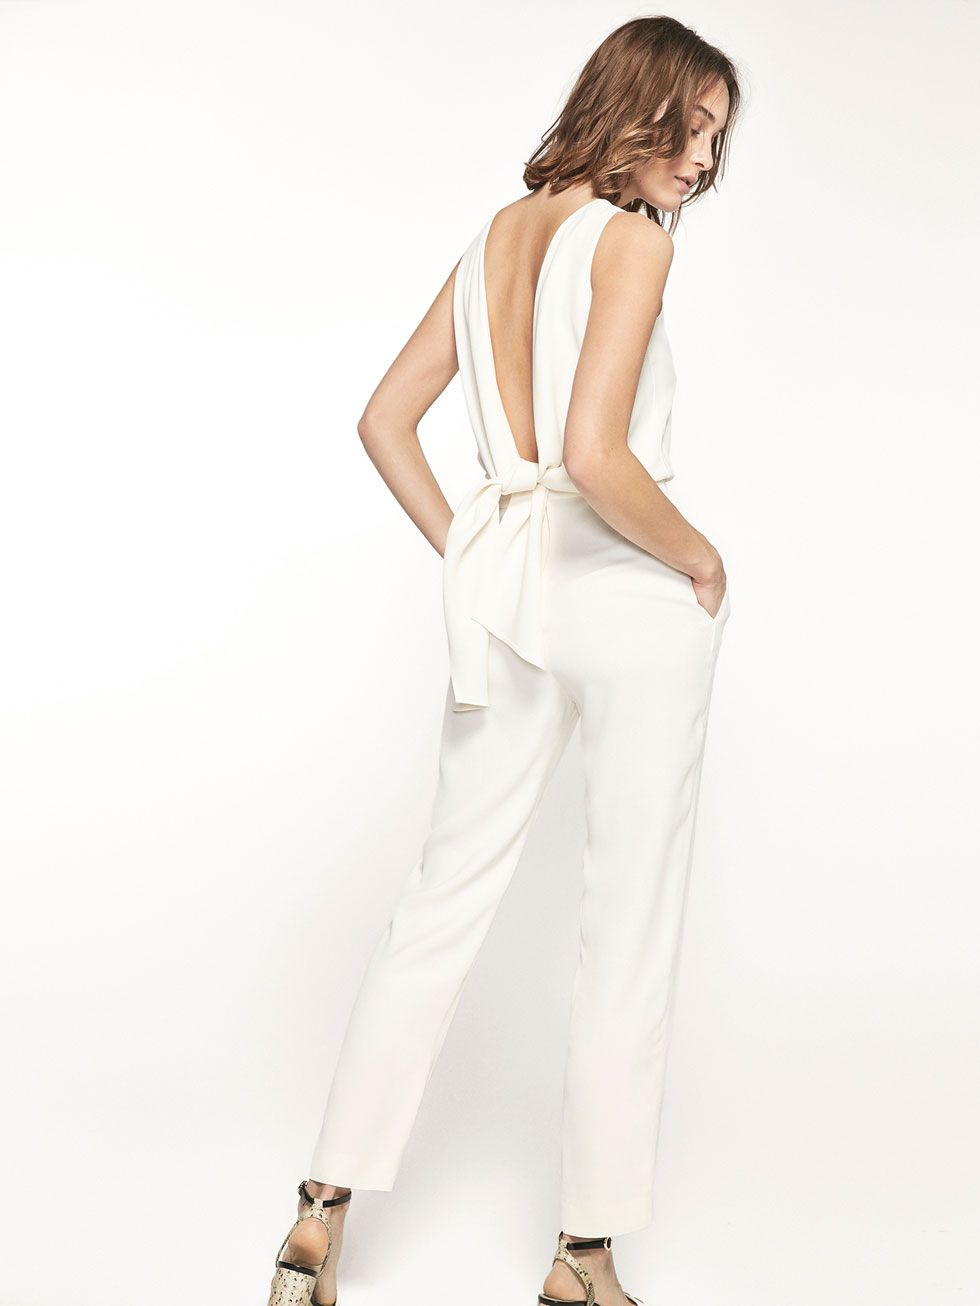 879a6b4210e3 Autumn Spring summer 2017 Women´s WHITE JUMPSUIT WITH BOW DETAIL at Massimo  Dutti for 150. Effortless elegance!